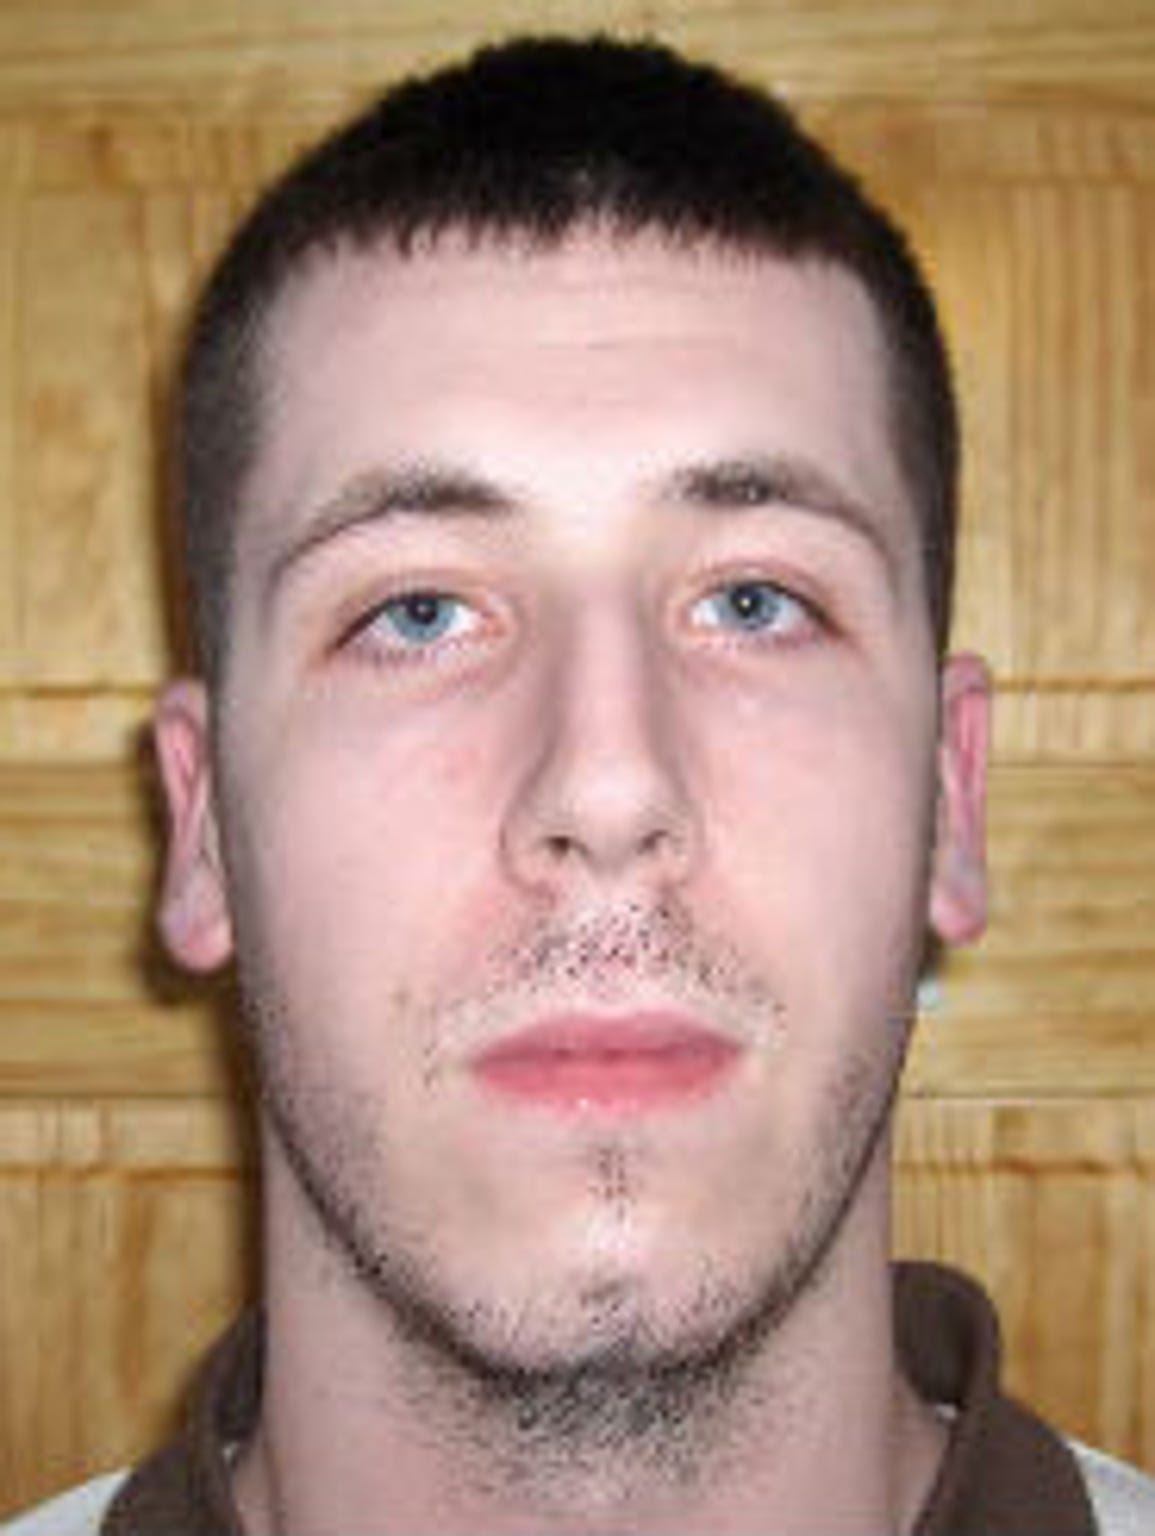 Dennis Chaplin is wanted on assault charges in Brockton,